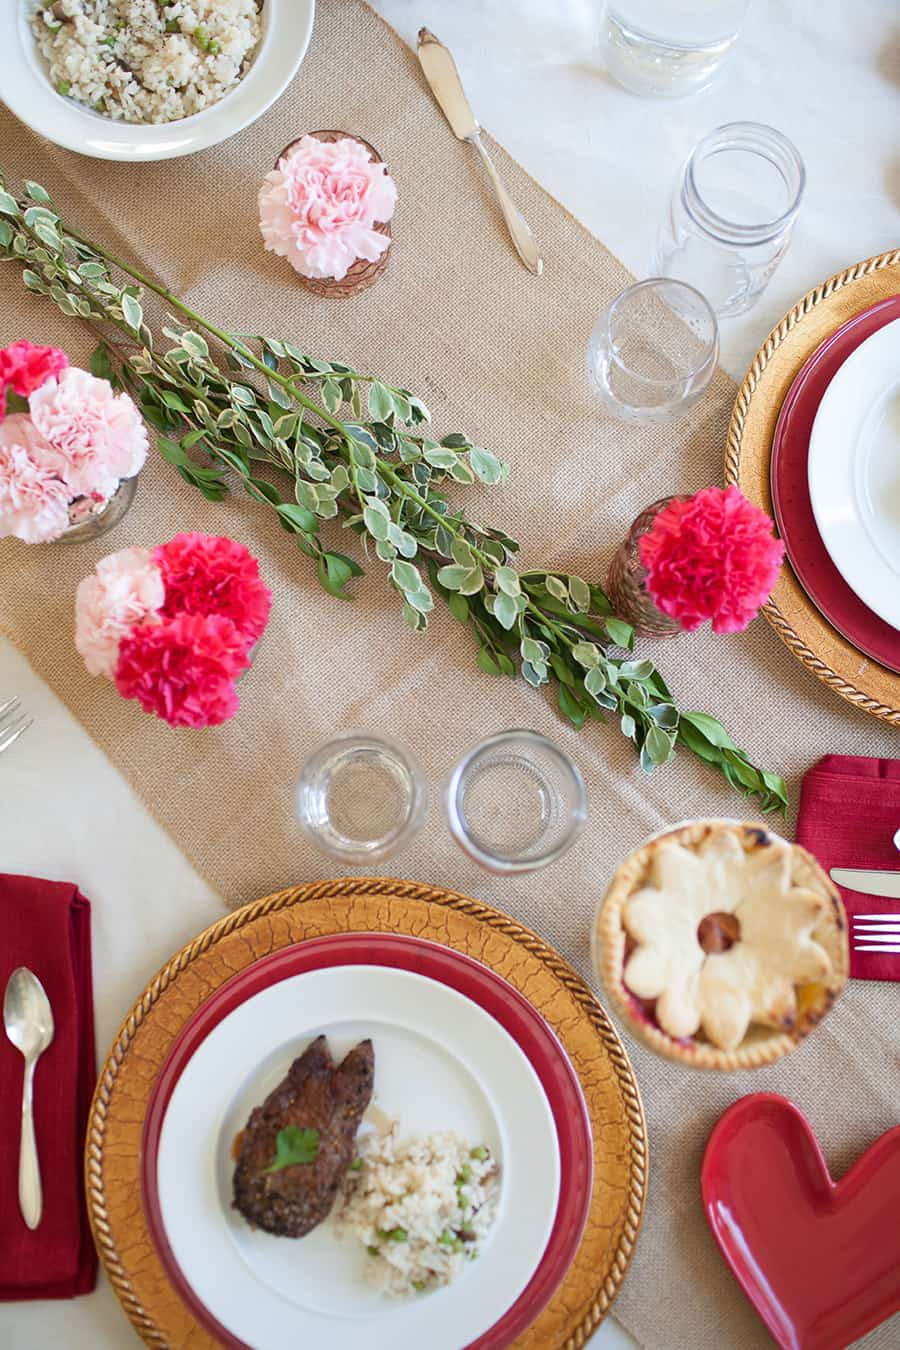 Looking for an easy date night in for Valentine's Day this year? This easy tablescape is the perfect way to wow your sweetheart this year. Plan a gorgeous tablescape with stacked plates of different colors, mixed metals and fresh carnations for a stunning look! valentines day ideas | date night at home | date night | valentines day dinner | valentines day table | valentine's day decor | valentines ideas | steak dinner ideas